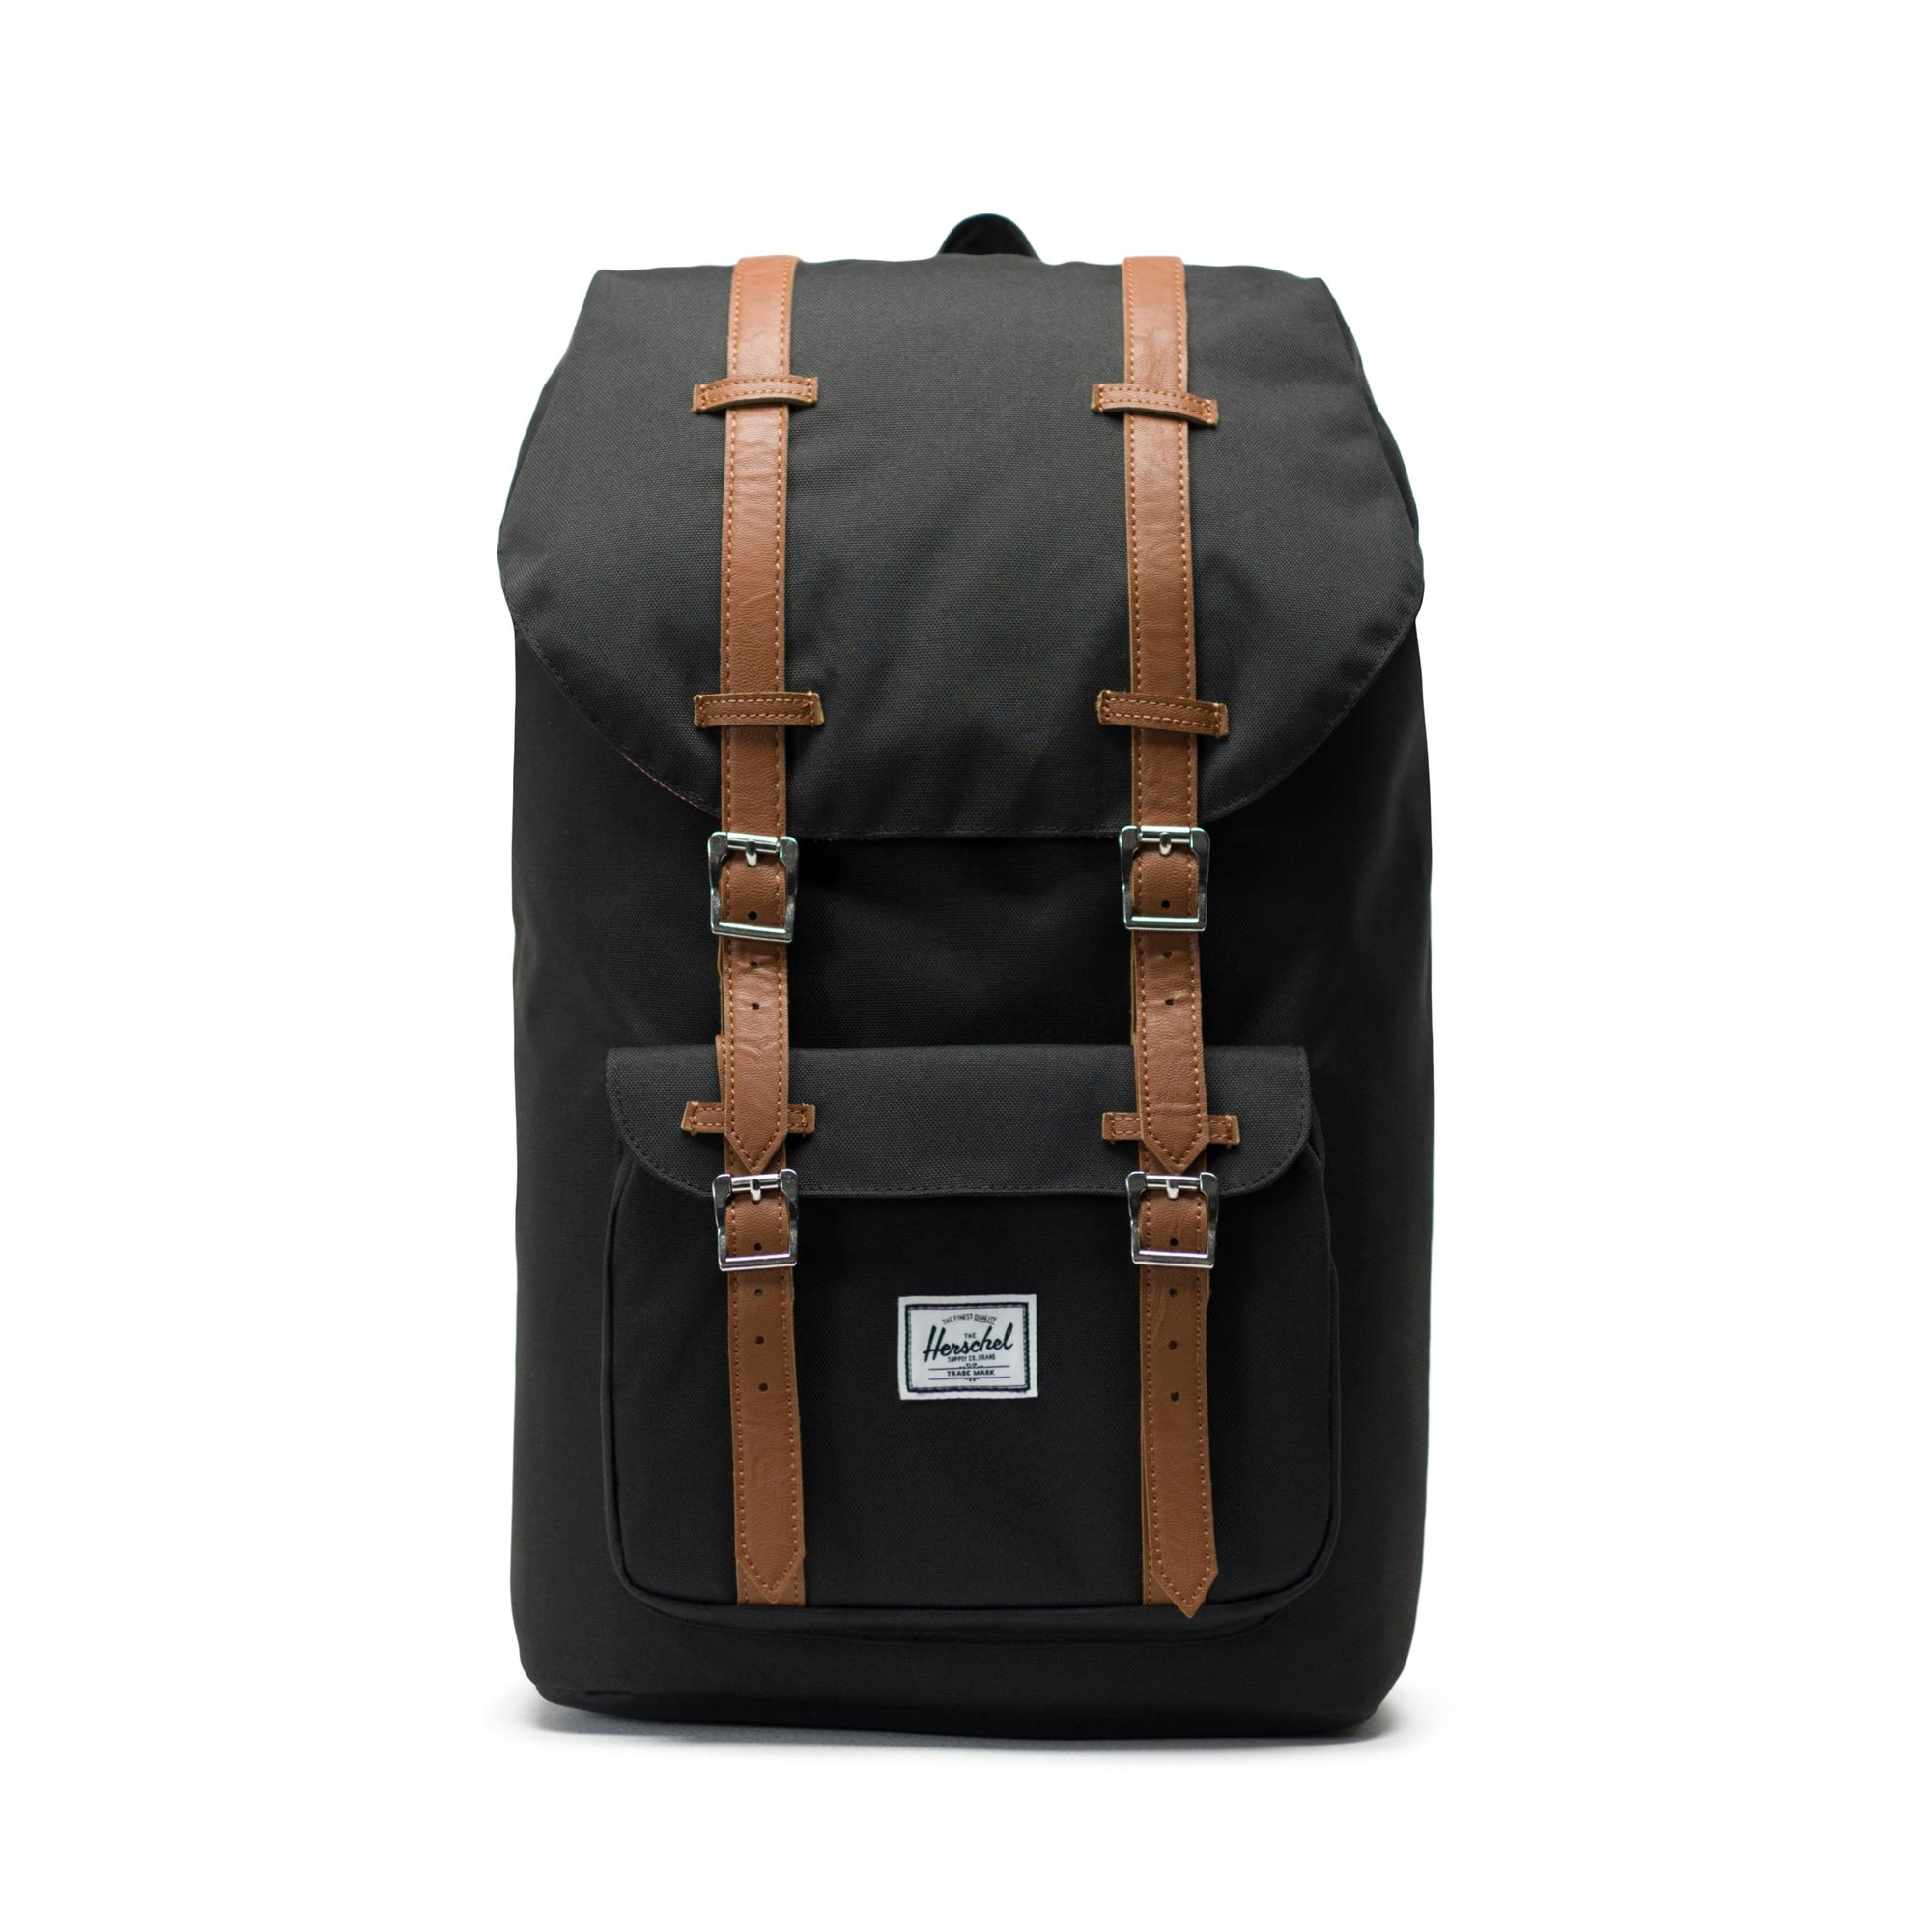 7a561a3da67d Herschel Little America Backpack